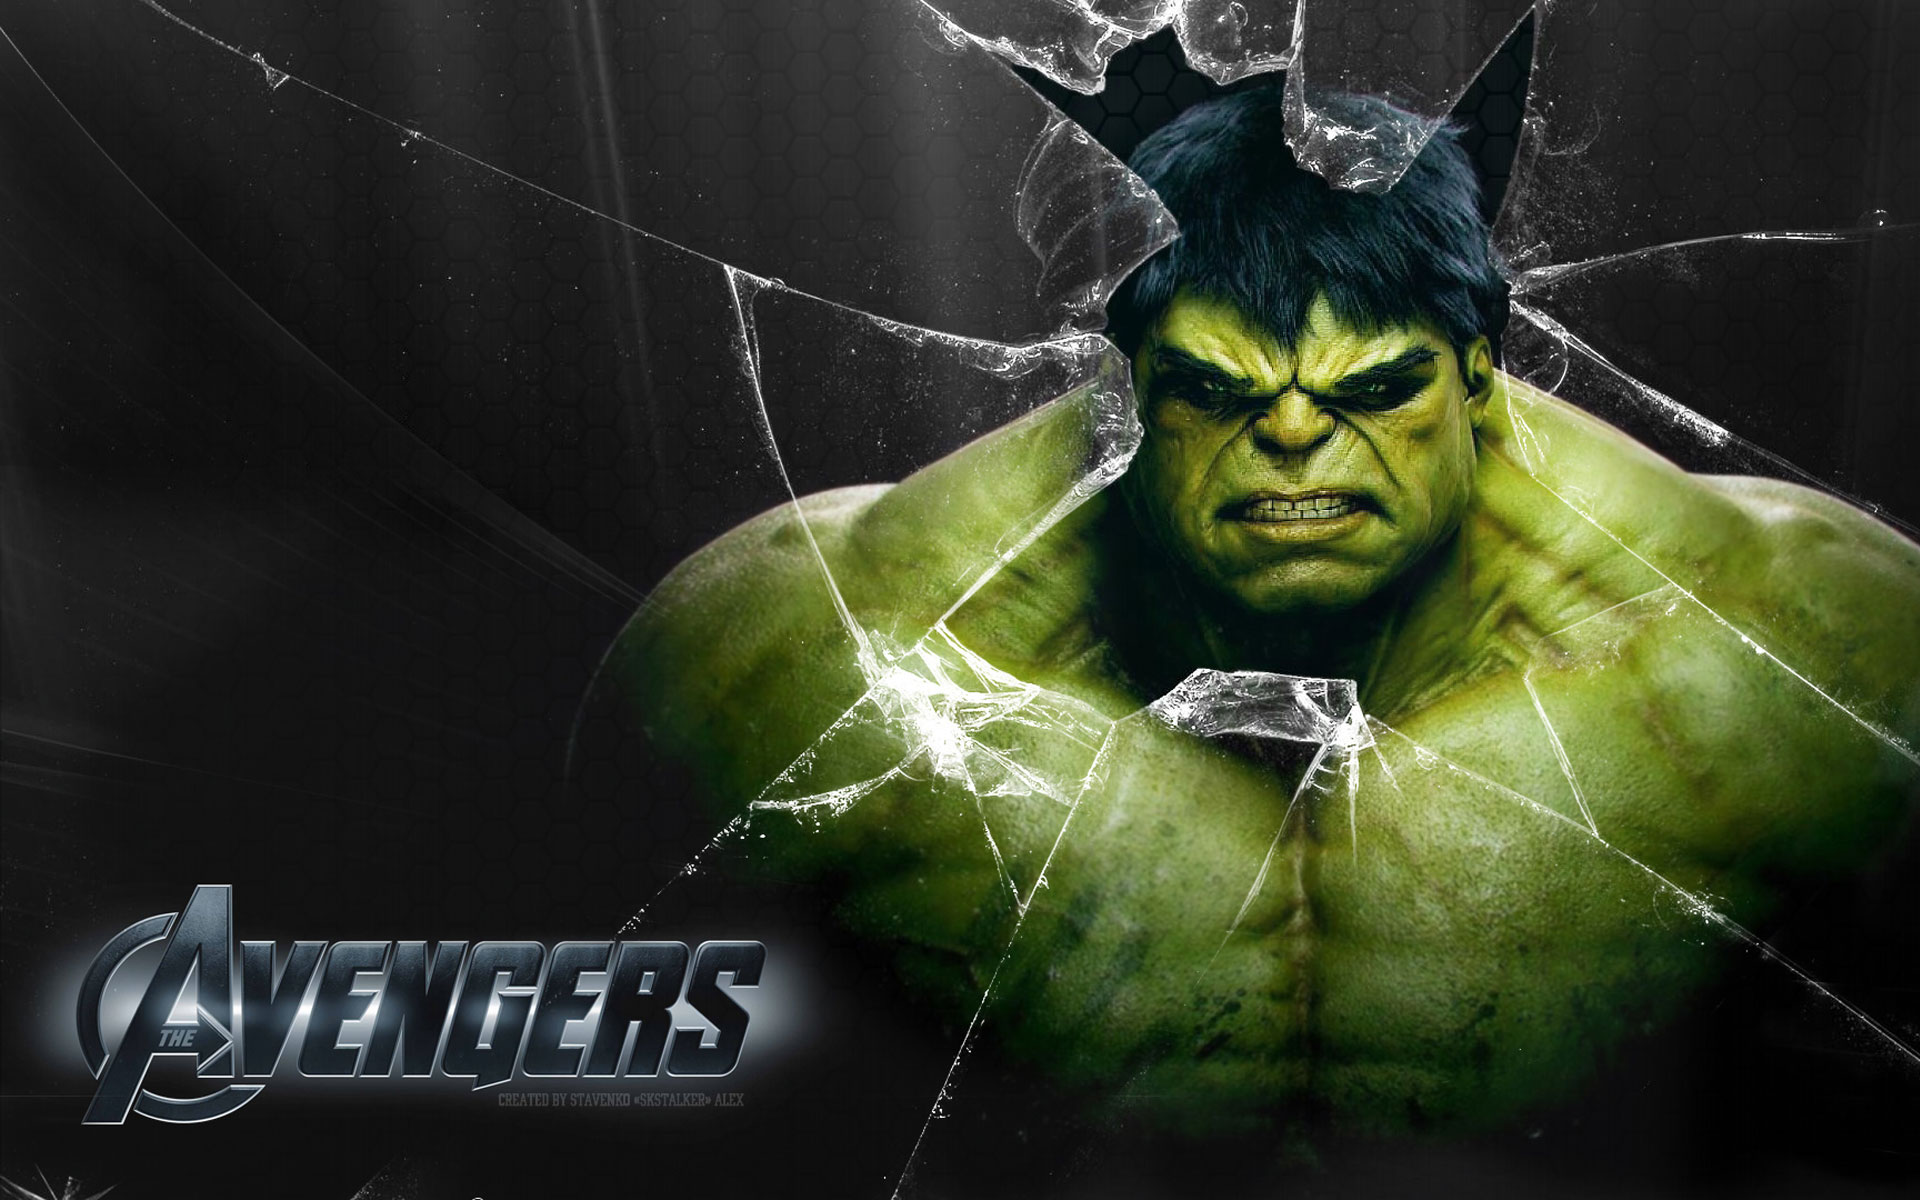 Avengers Hulk Exclusive HD Wallpapers 6283 1920x1200